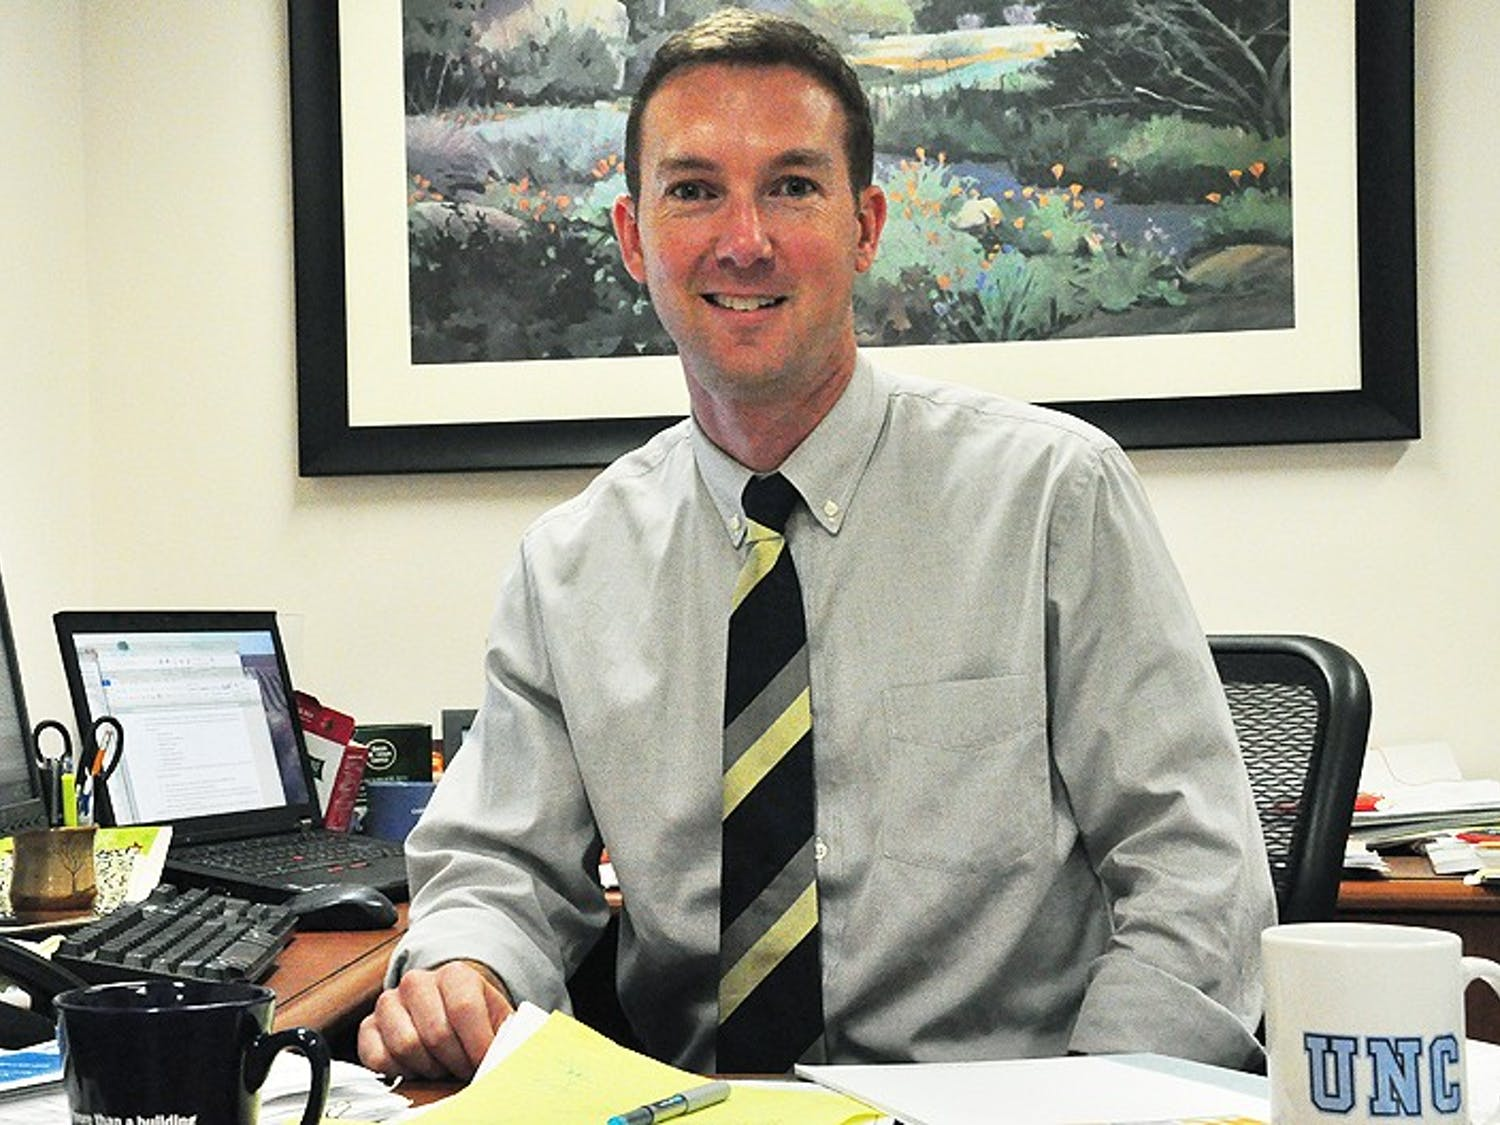 Bob Pleasants is the Interpersonal Violence Prevention Director. This month is Sexual Assault Awareness Month.